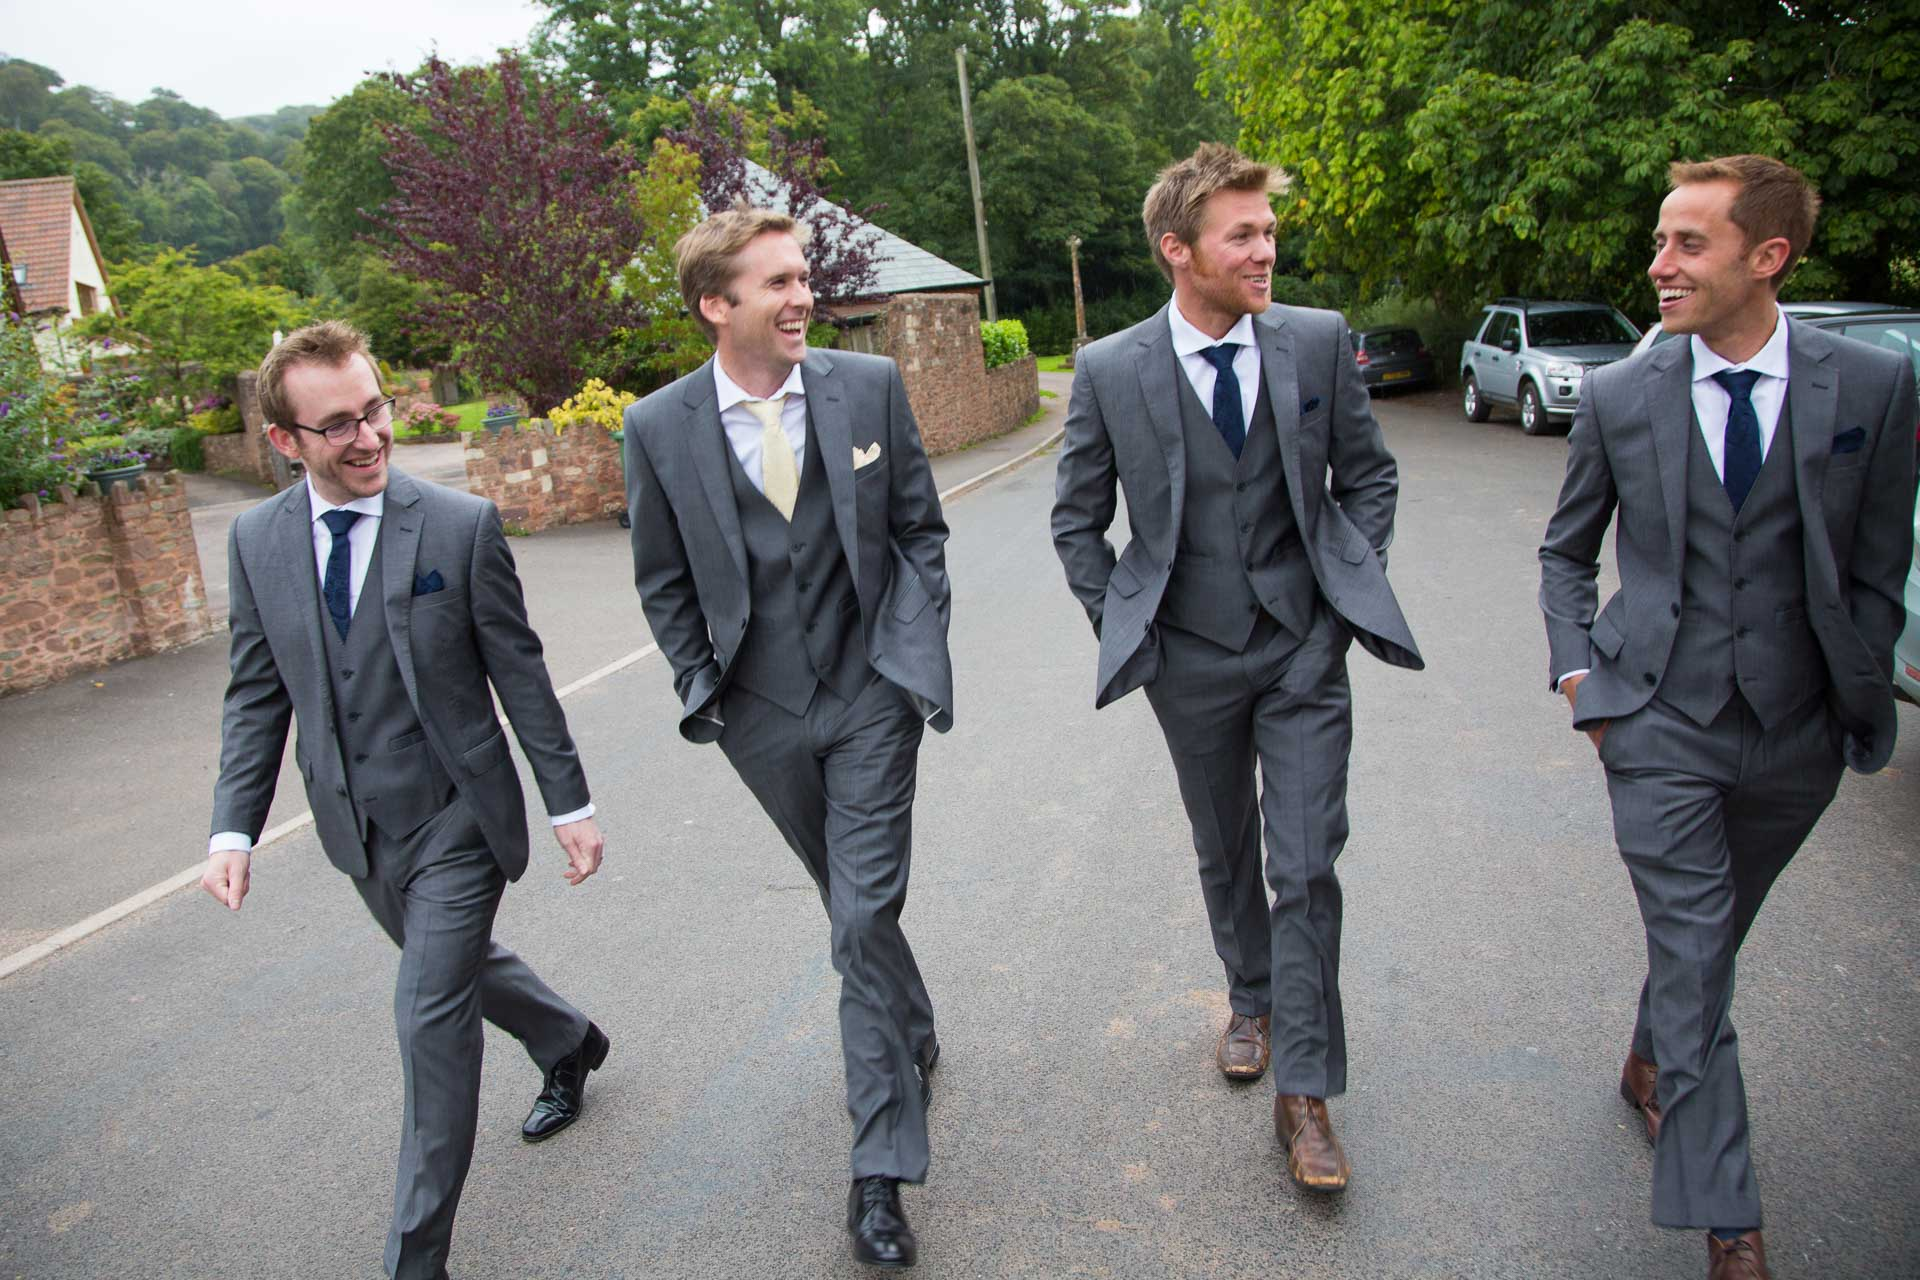 Crowcombe court wedding 02